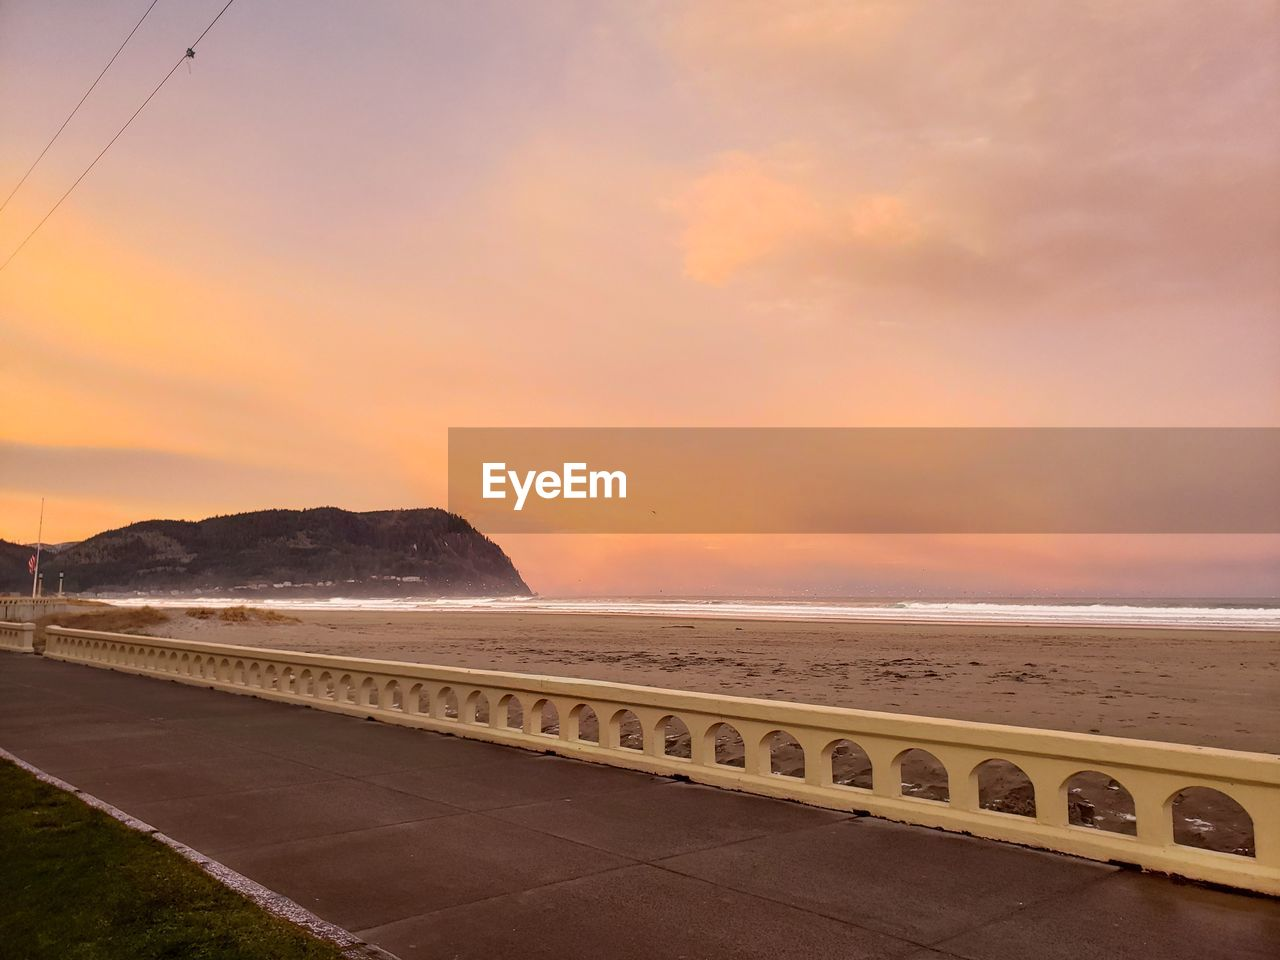 sky, sunset, water, sea, beauty in nature, scenics - nature, cloud - sky, nature, land, tranquility, tranquil scene, orange color, beach, no people, mountain, transportation, road, horizon over water, idyllic, outdoors